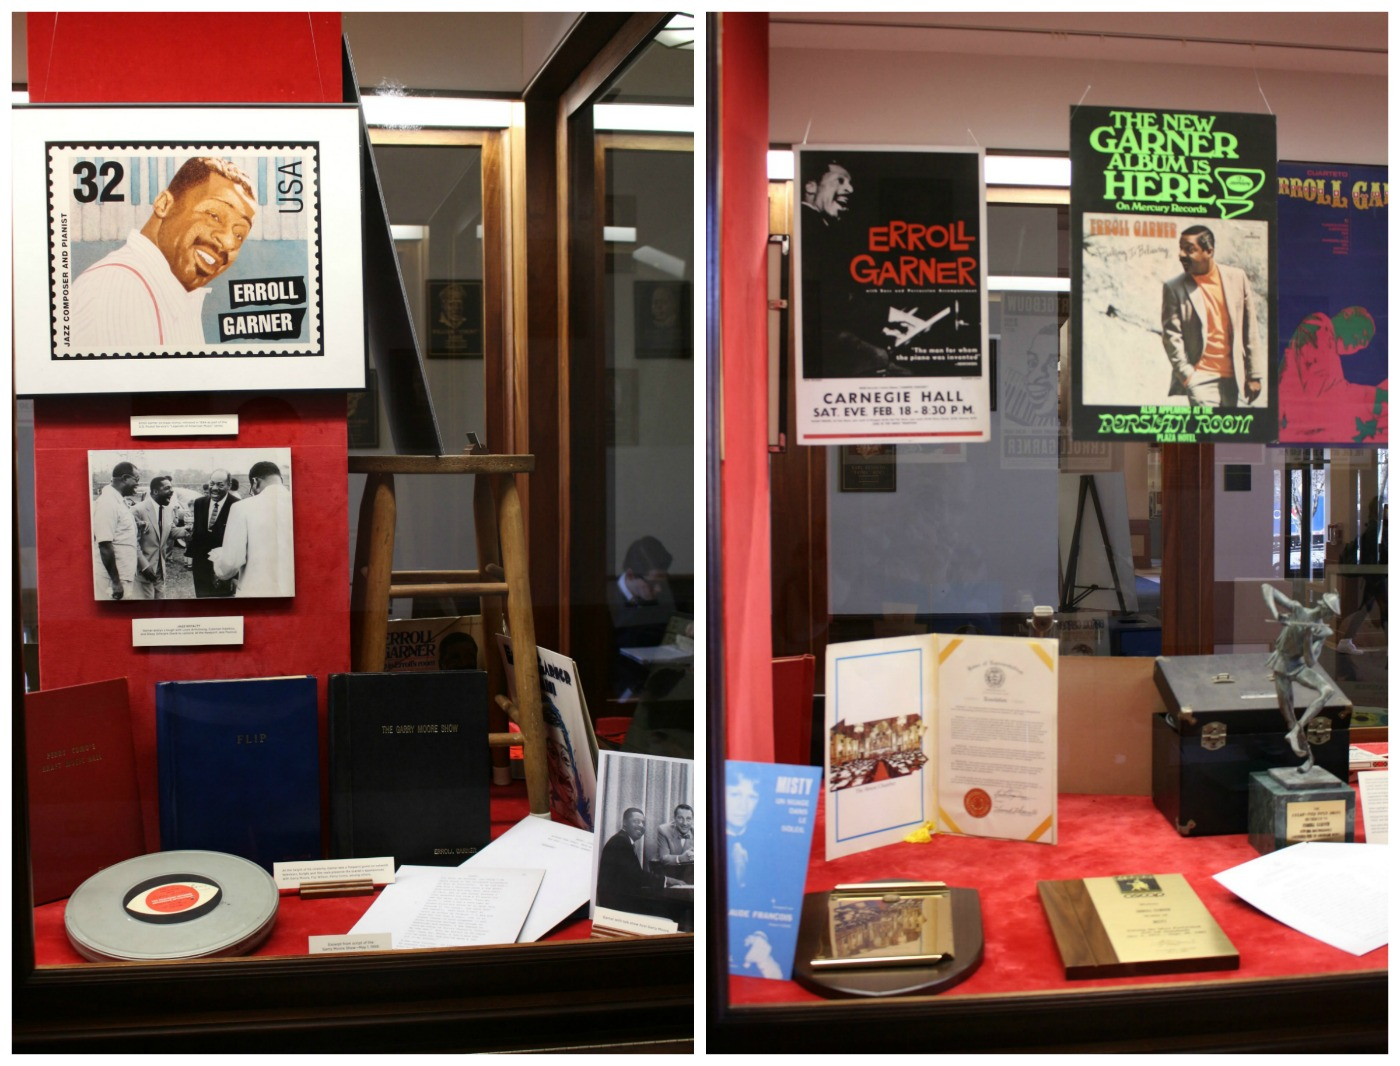 erroll garner exhibit